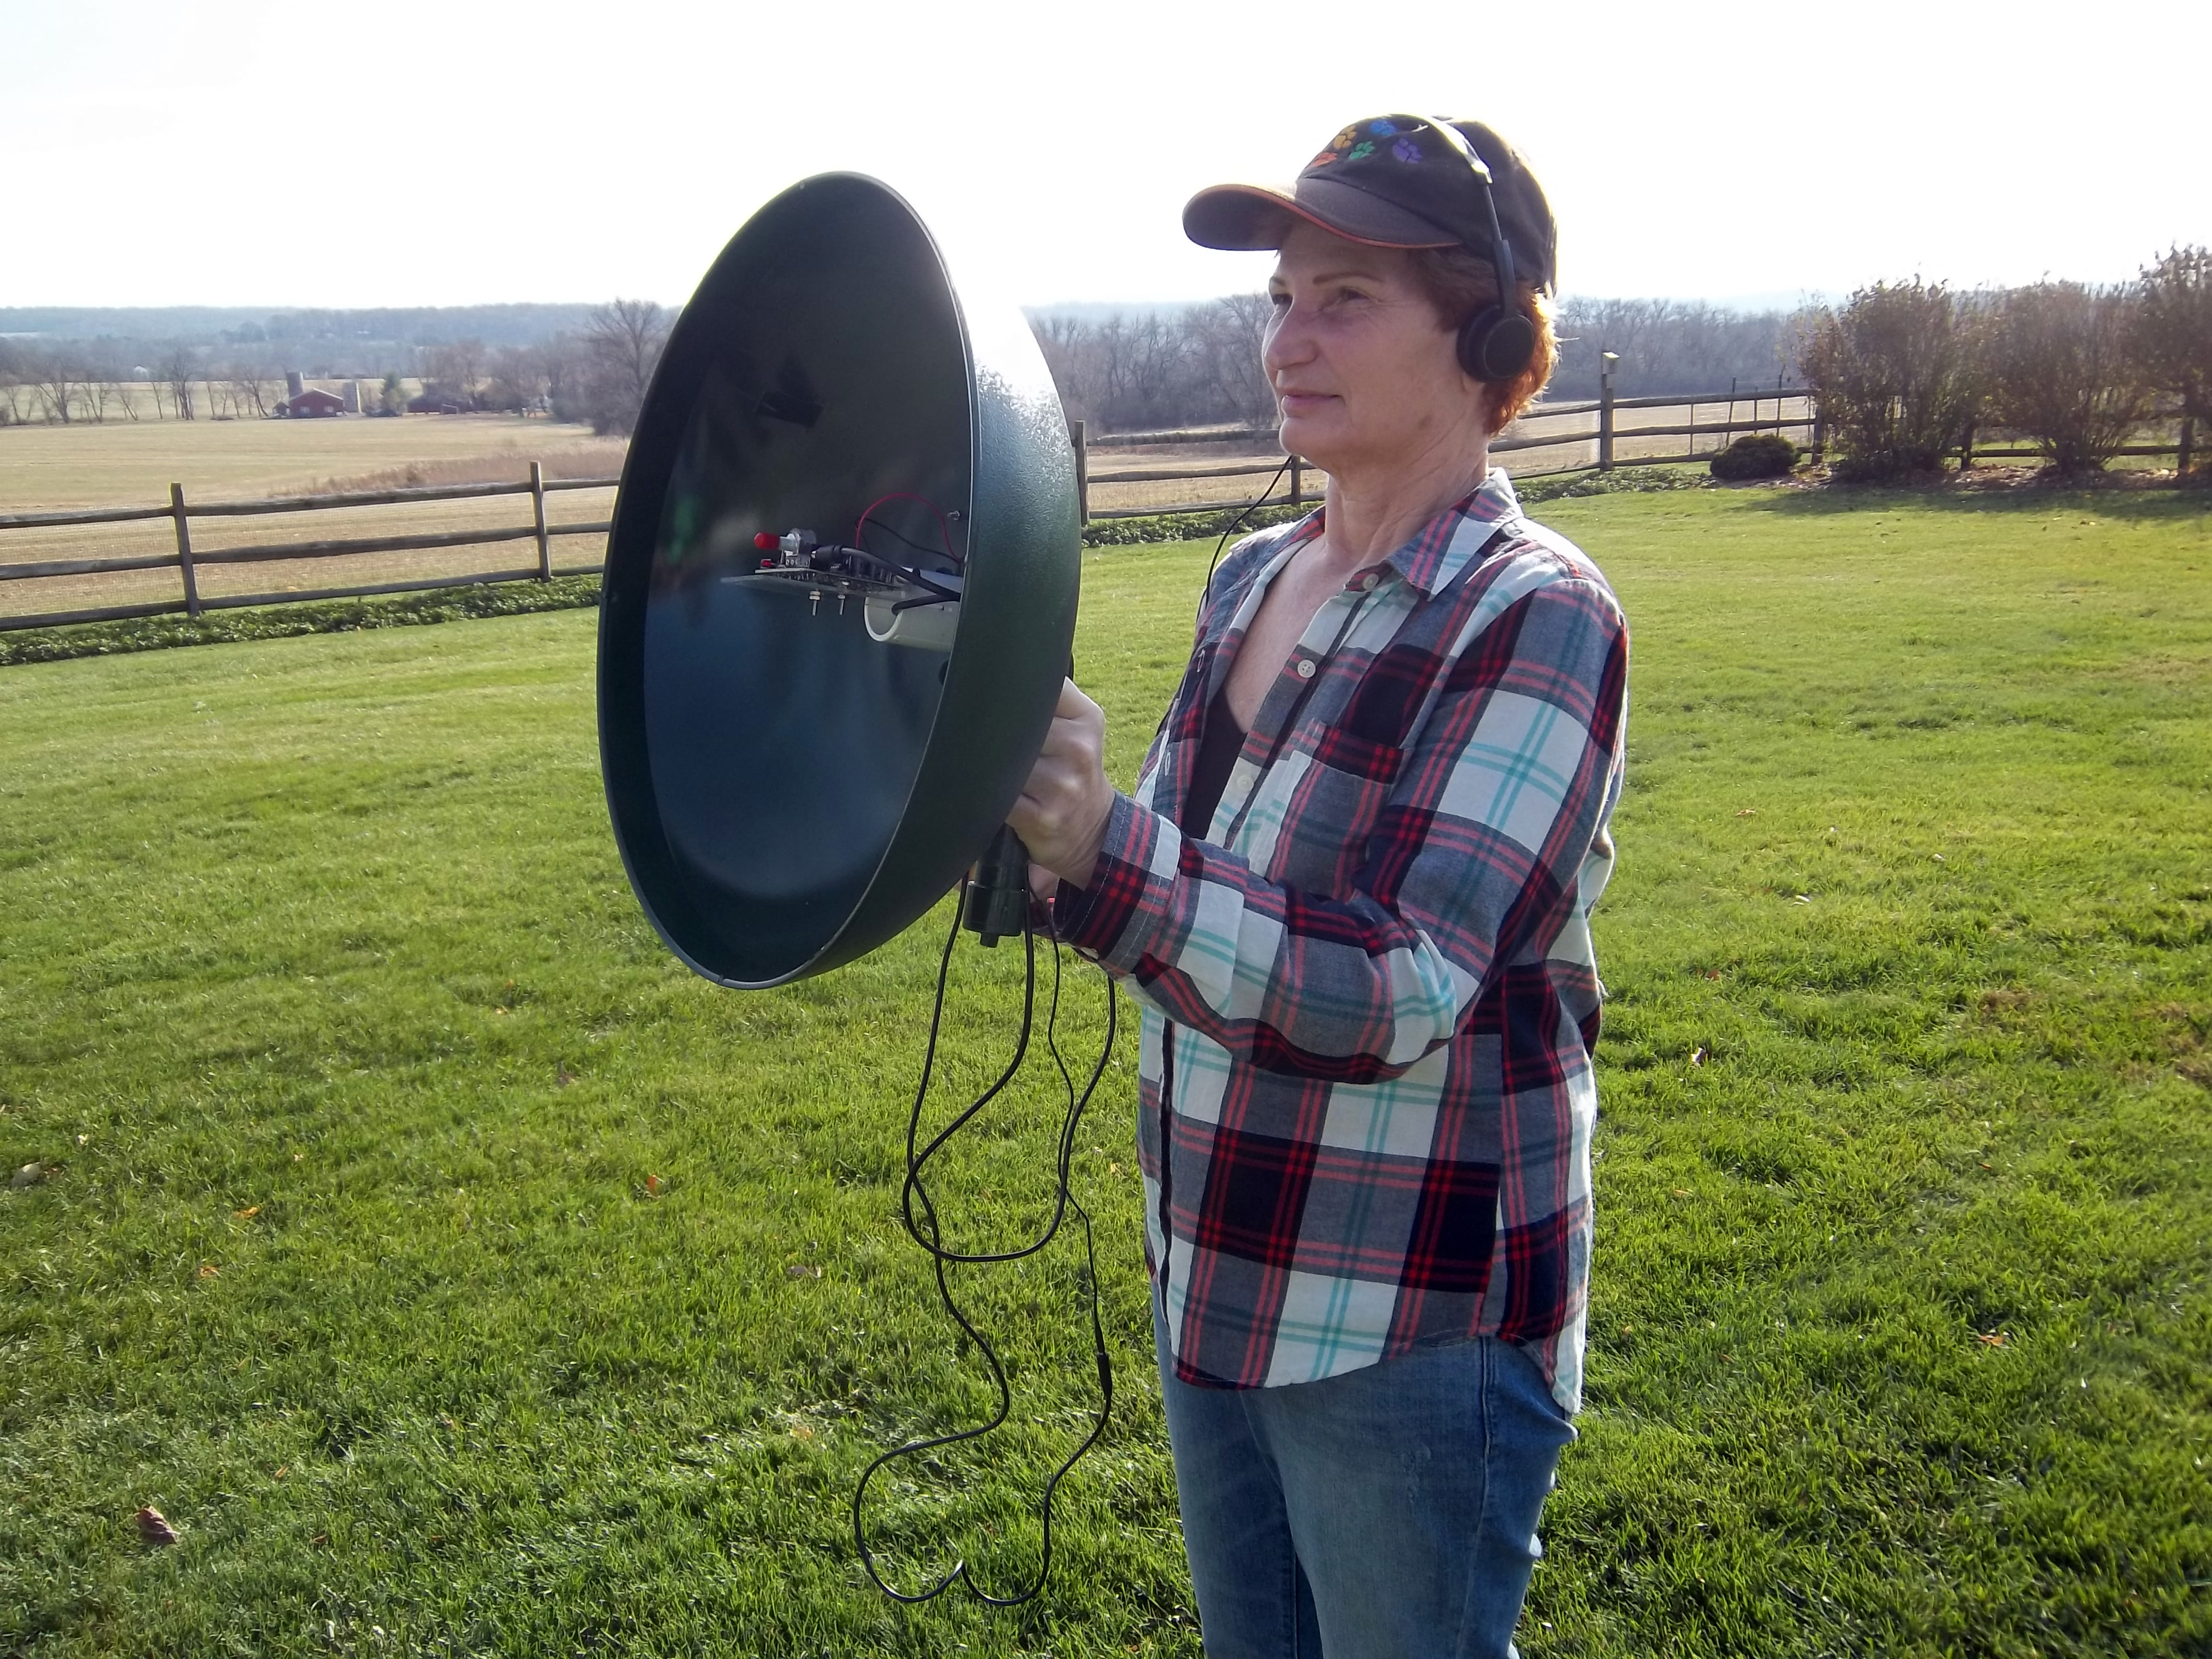 Squirrel Baffle Spy Parabolic Microphone Make How To Build Ear